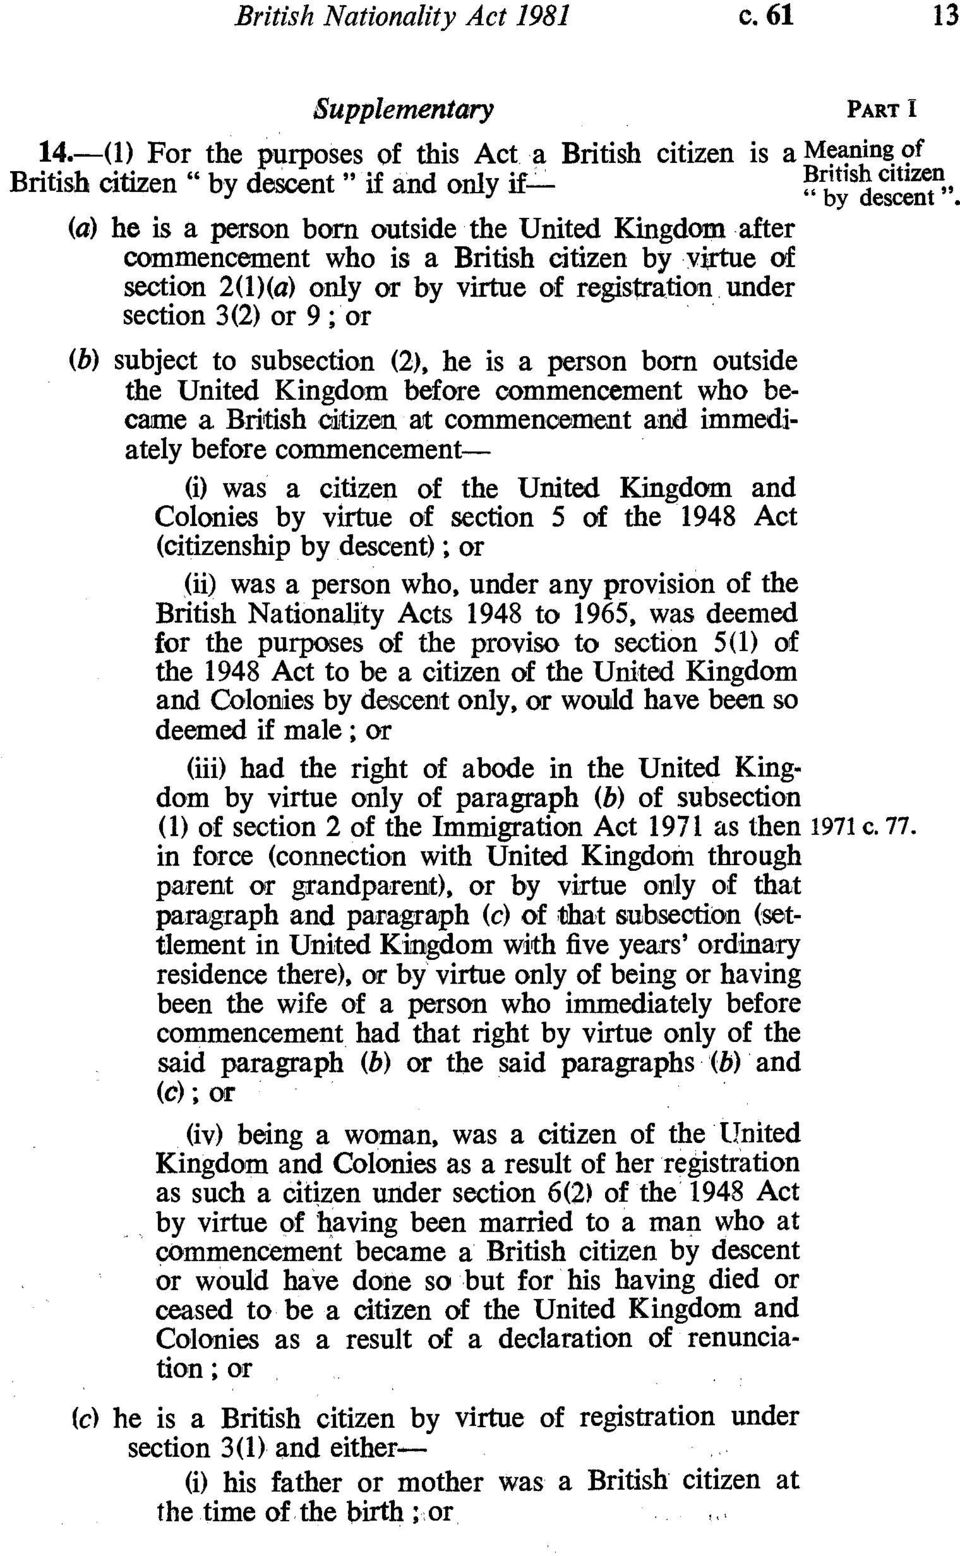 "citizen "" by descent "" if and only if (b) subject to subsection (2), he is a person born outside the United Kingdom before commencement who became a British citizen at commencement and immediately"